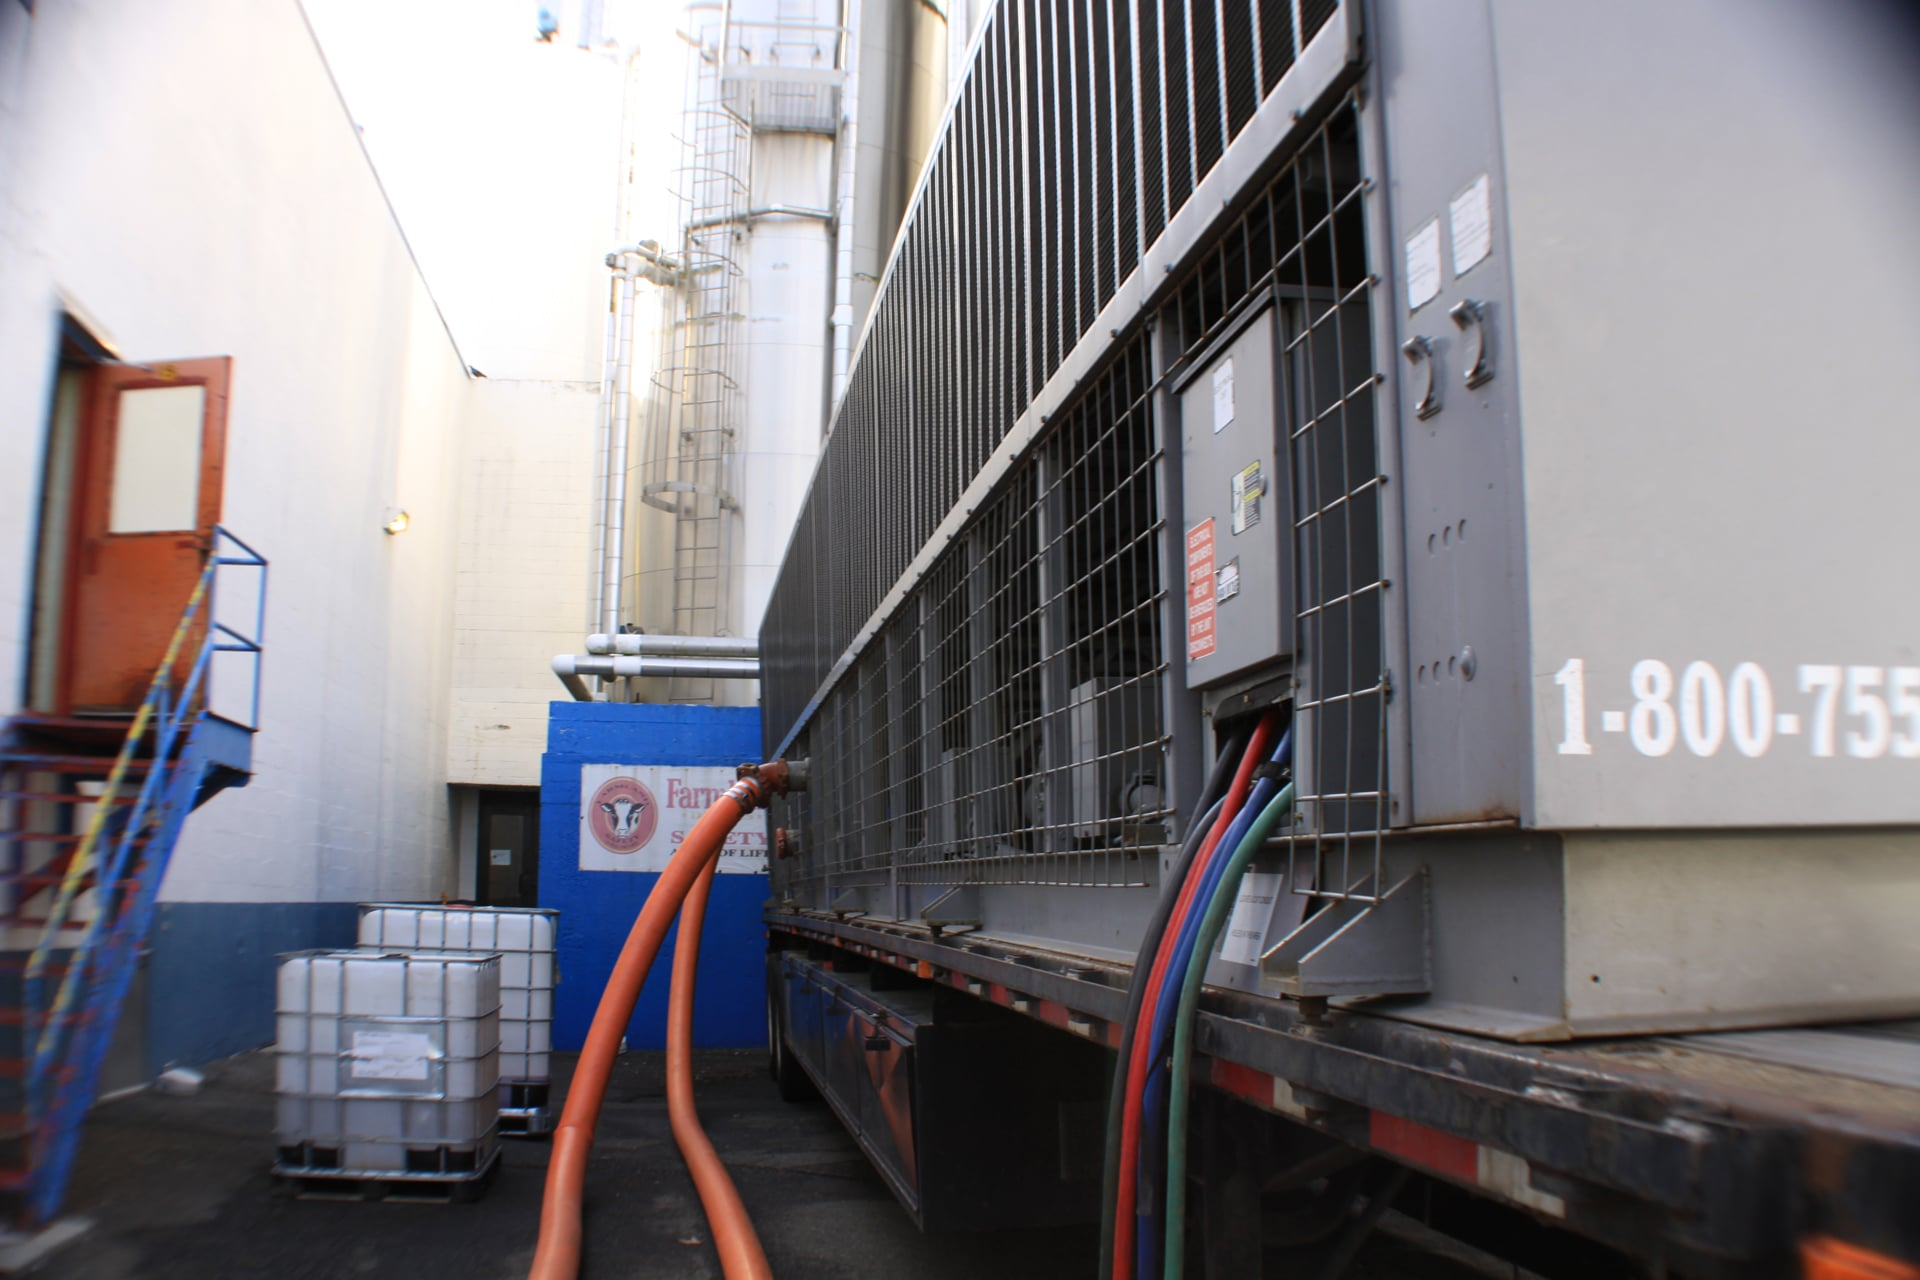 Temporary Chiller Passaic County NJ, Air Cooled Chiller Rental Passaic County NJ